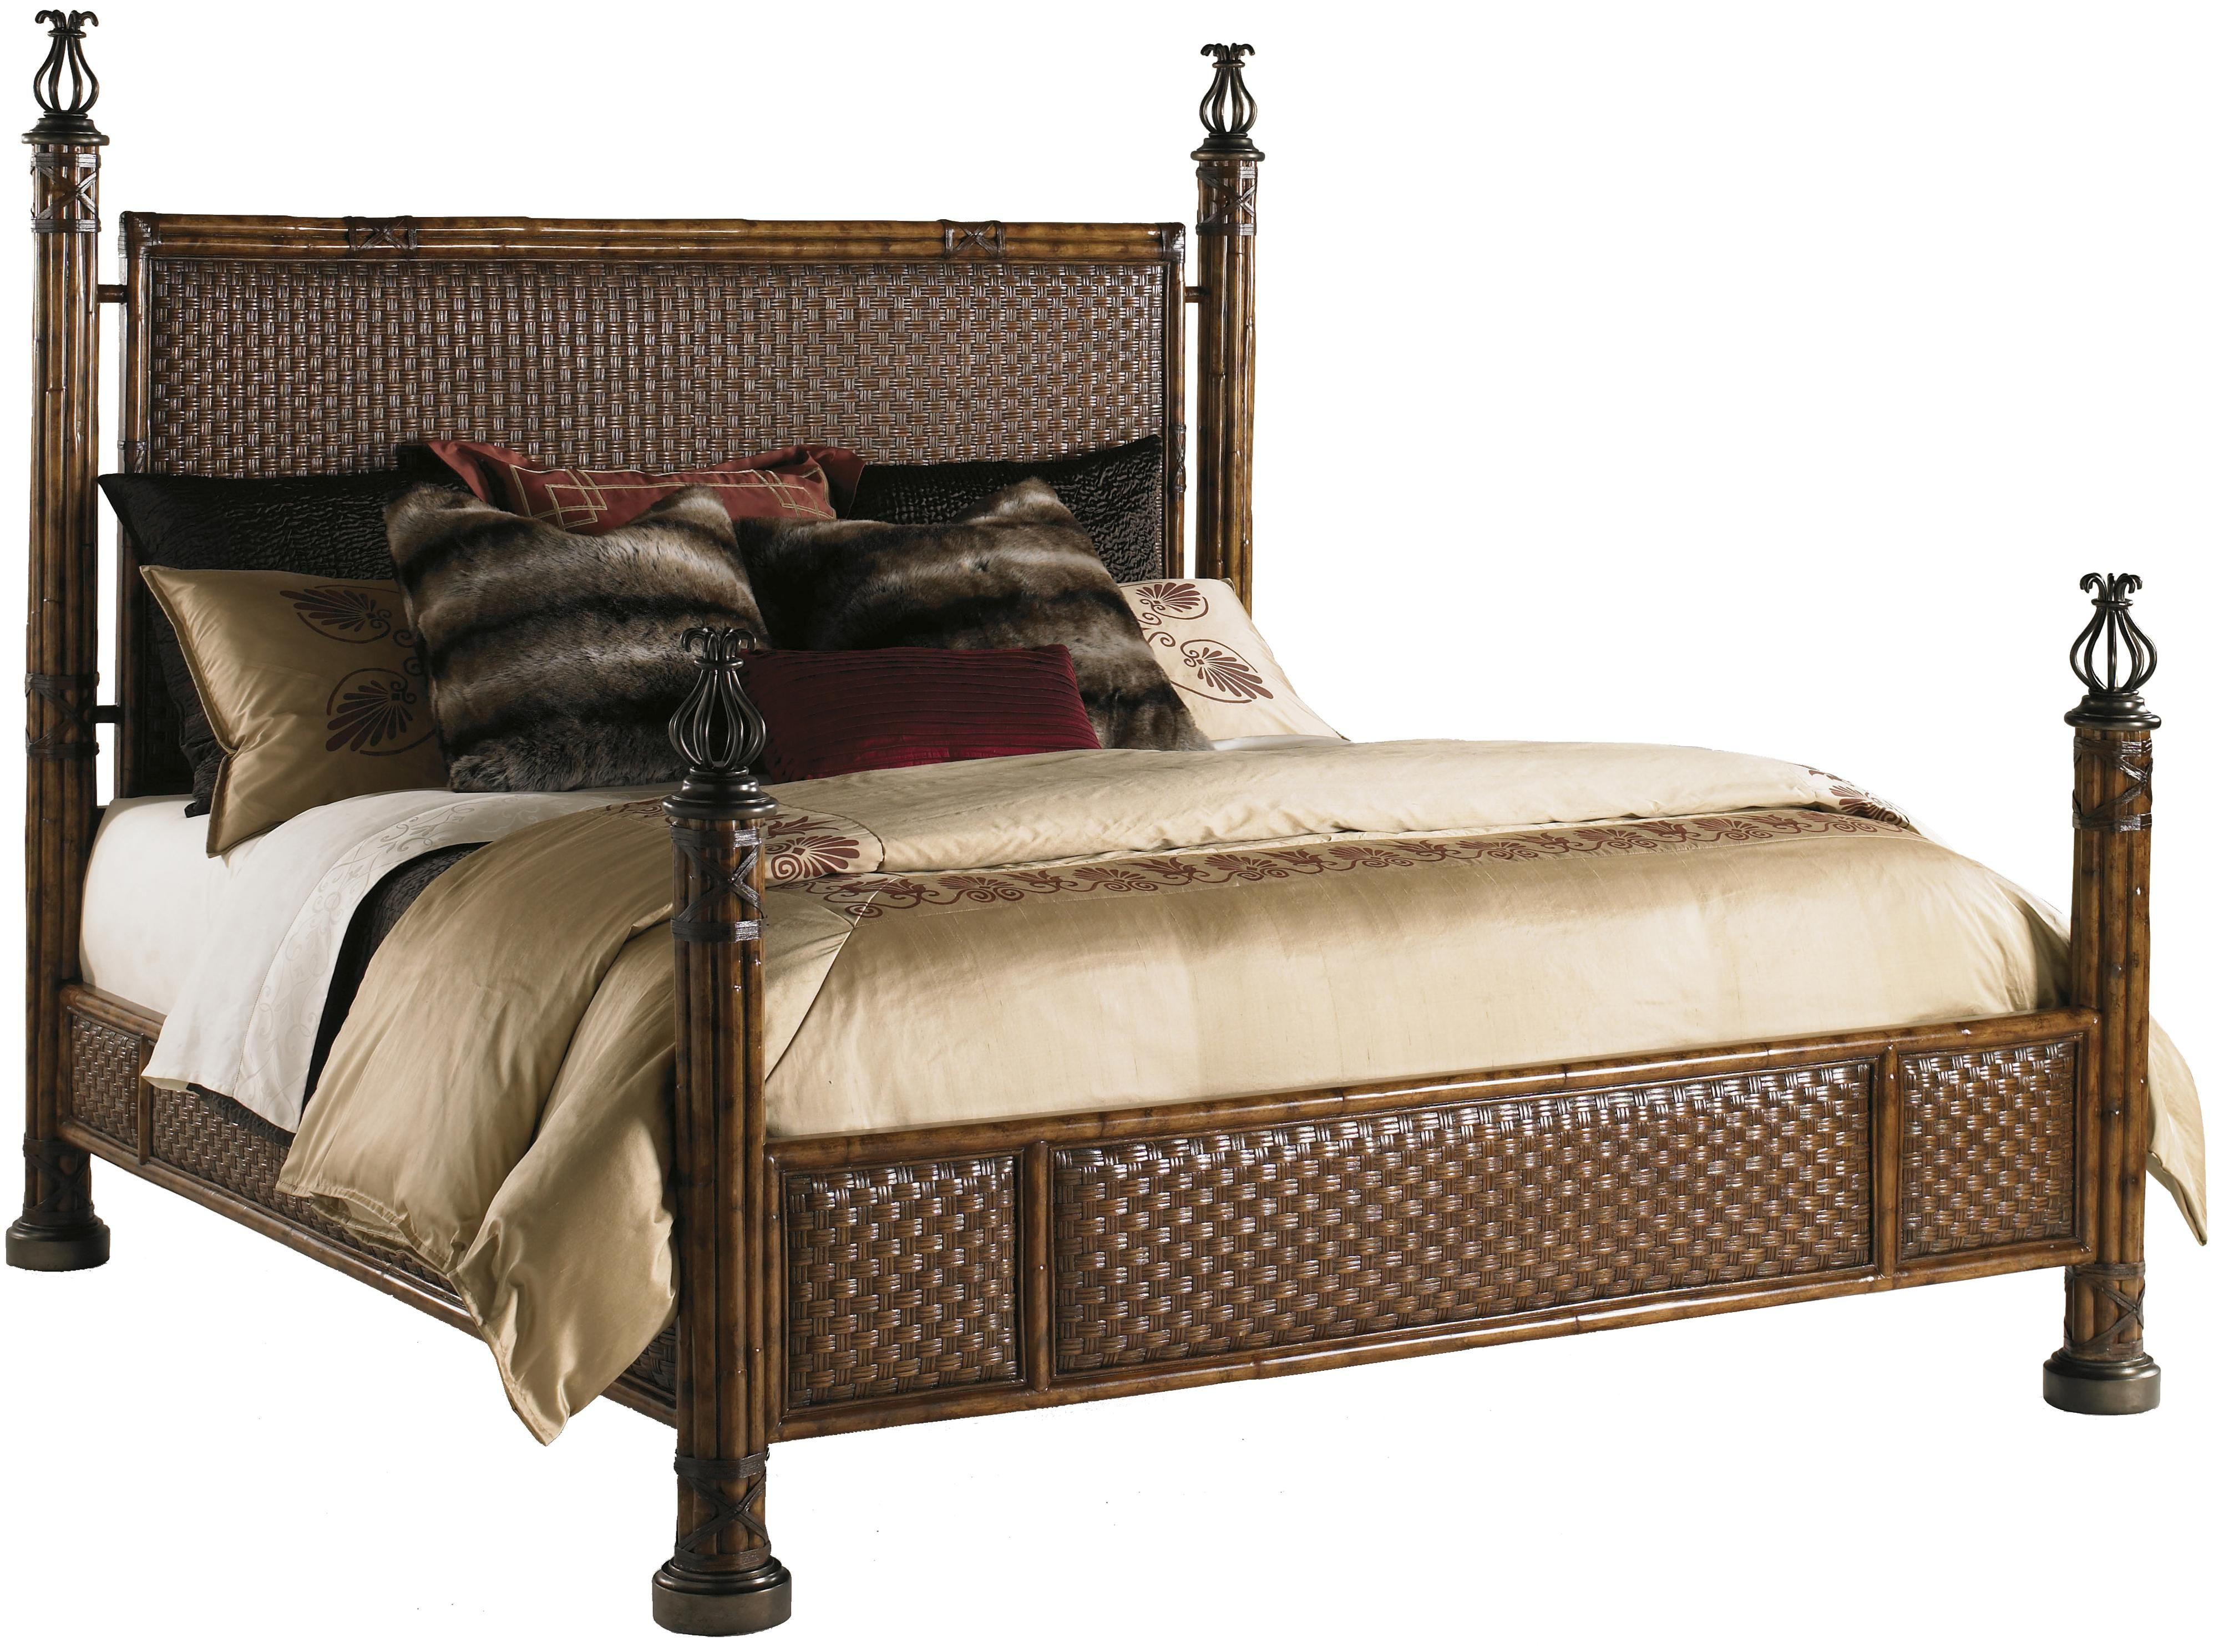 want to build a bed like this Wicker bedroom furniture